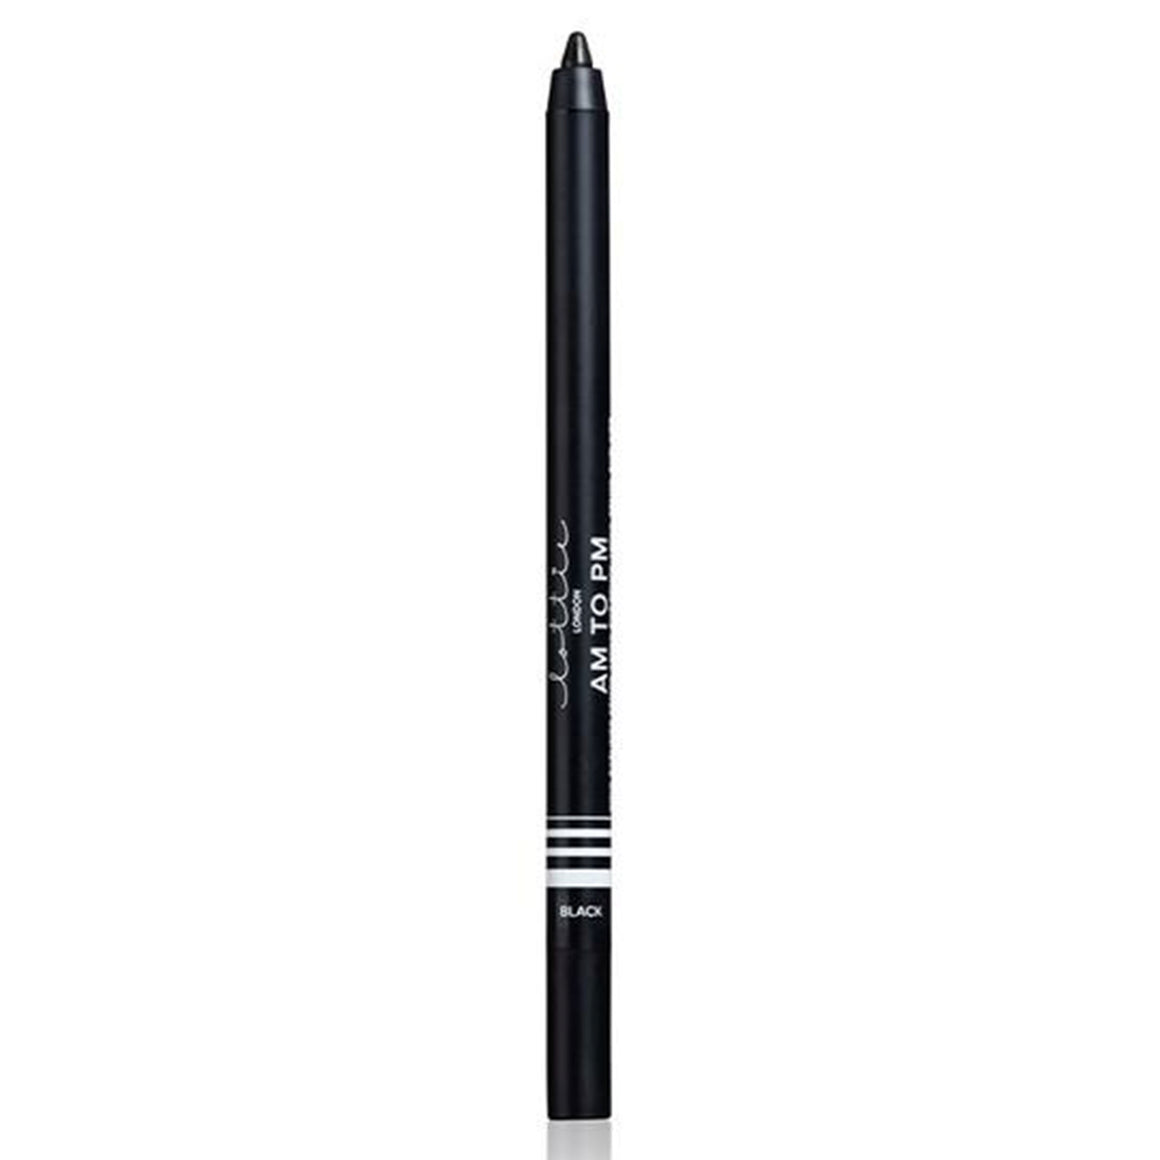 Lottie London - Am to Pm Eyeliner - Black